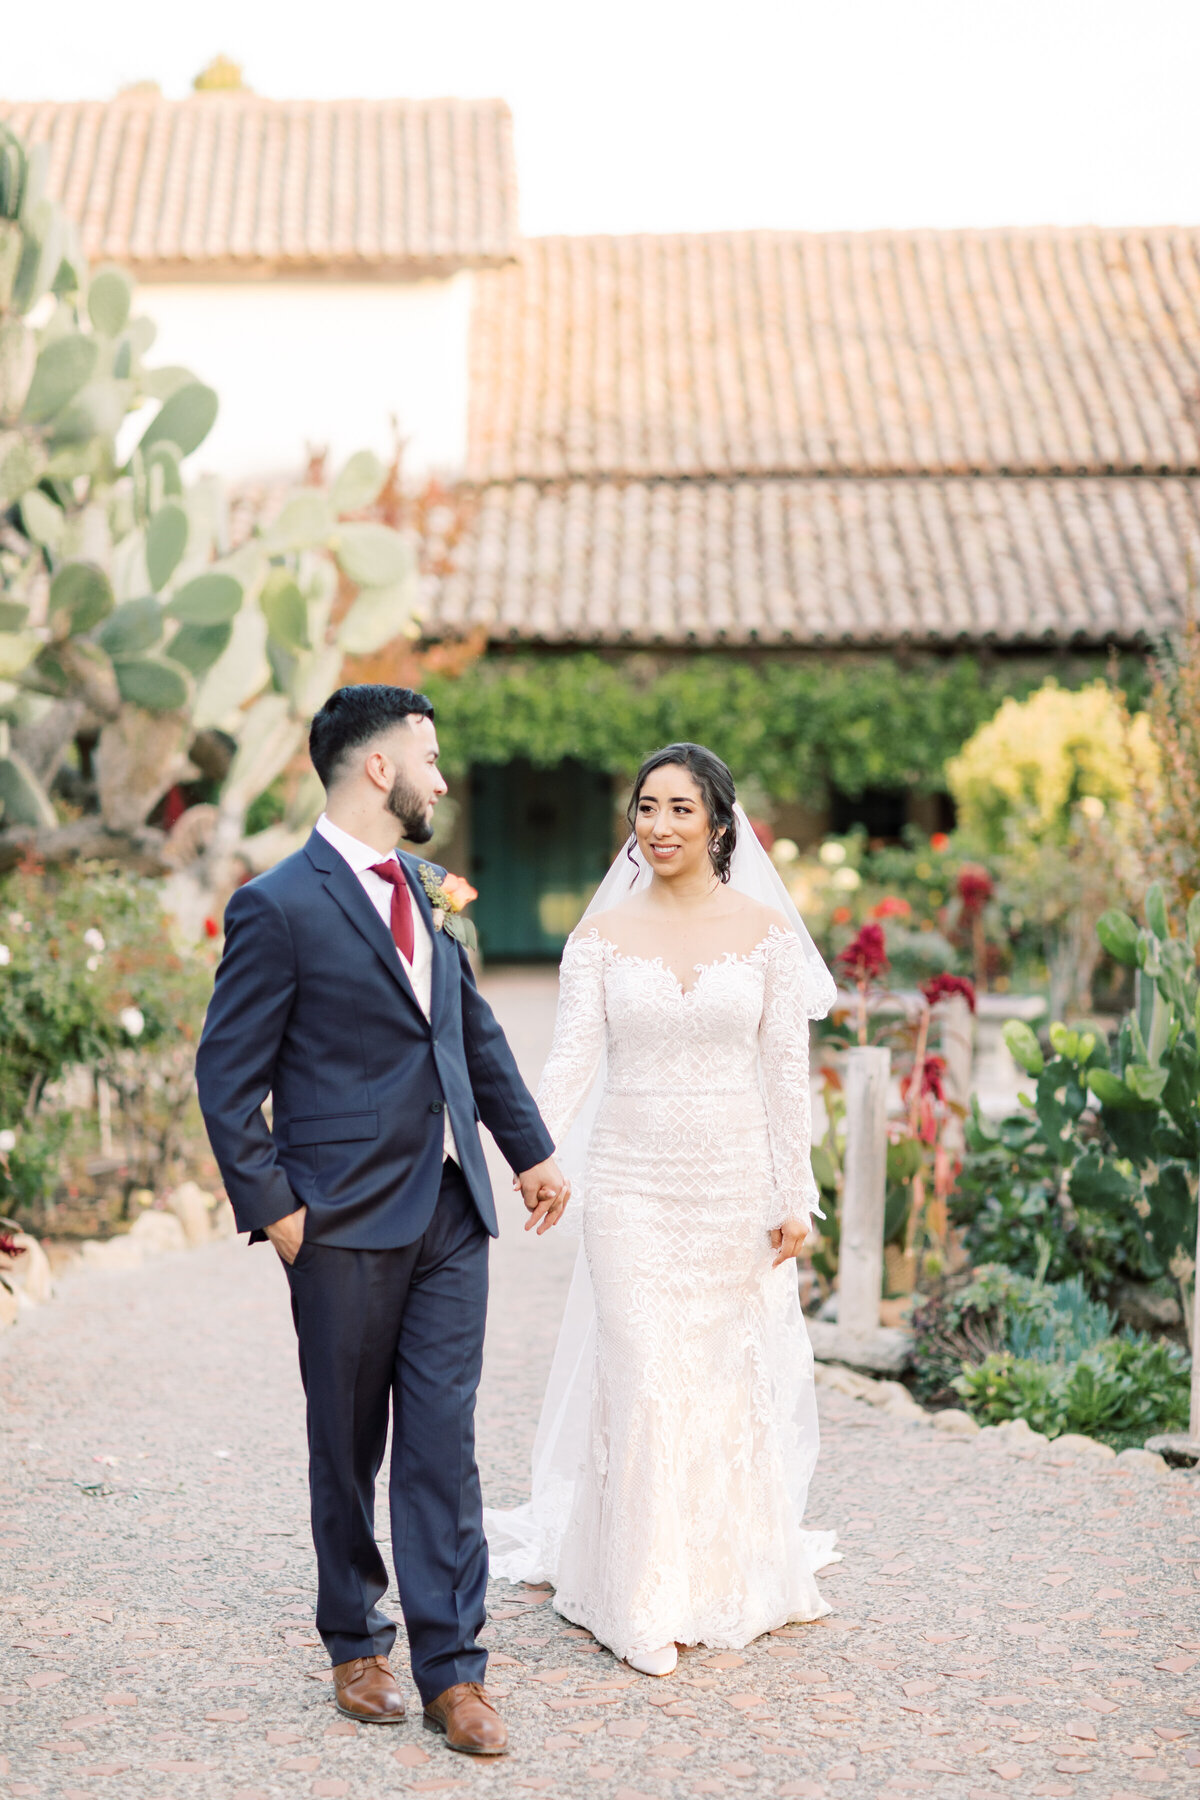 Bride and groom walk through a succulent garden in Carmel